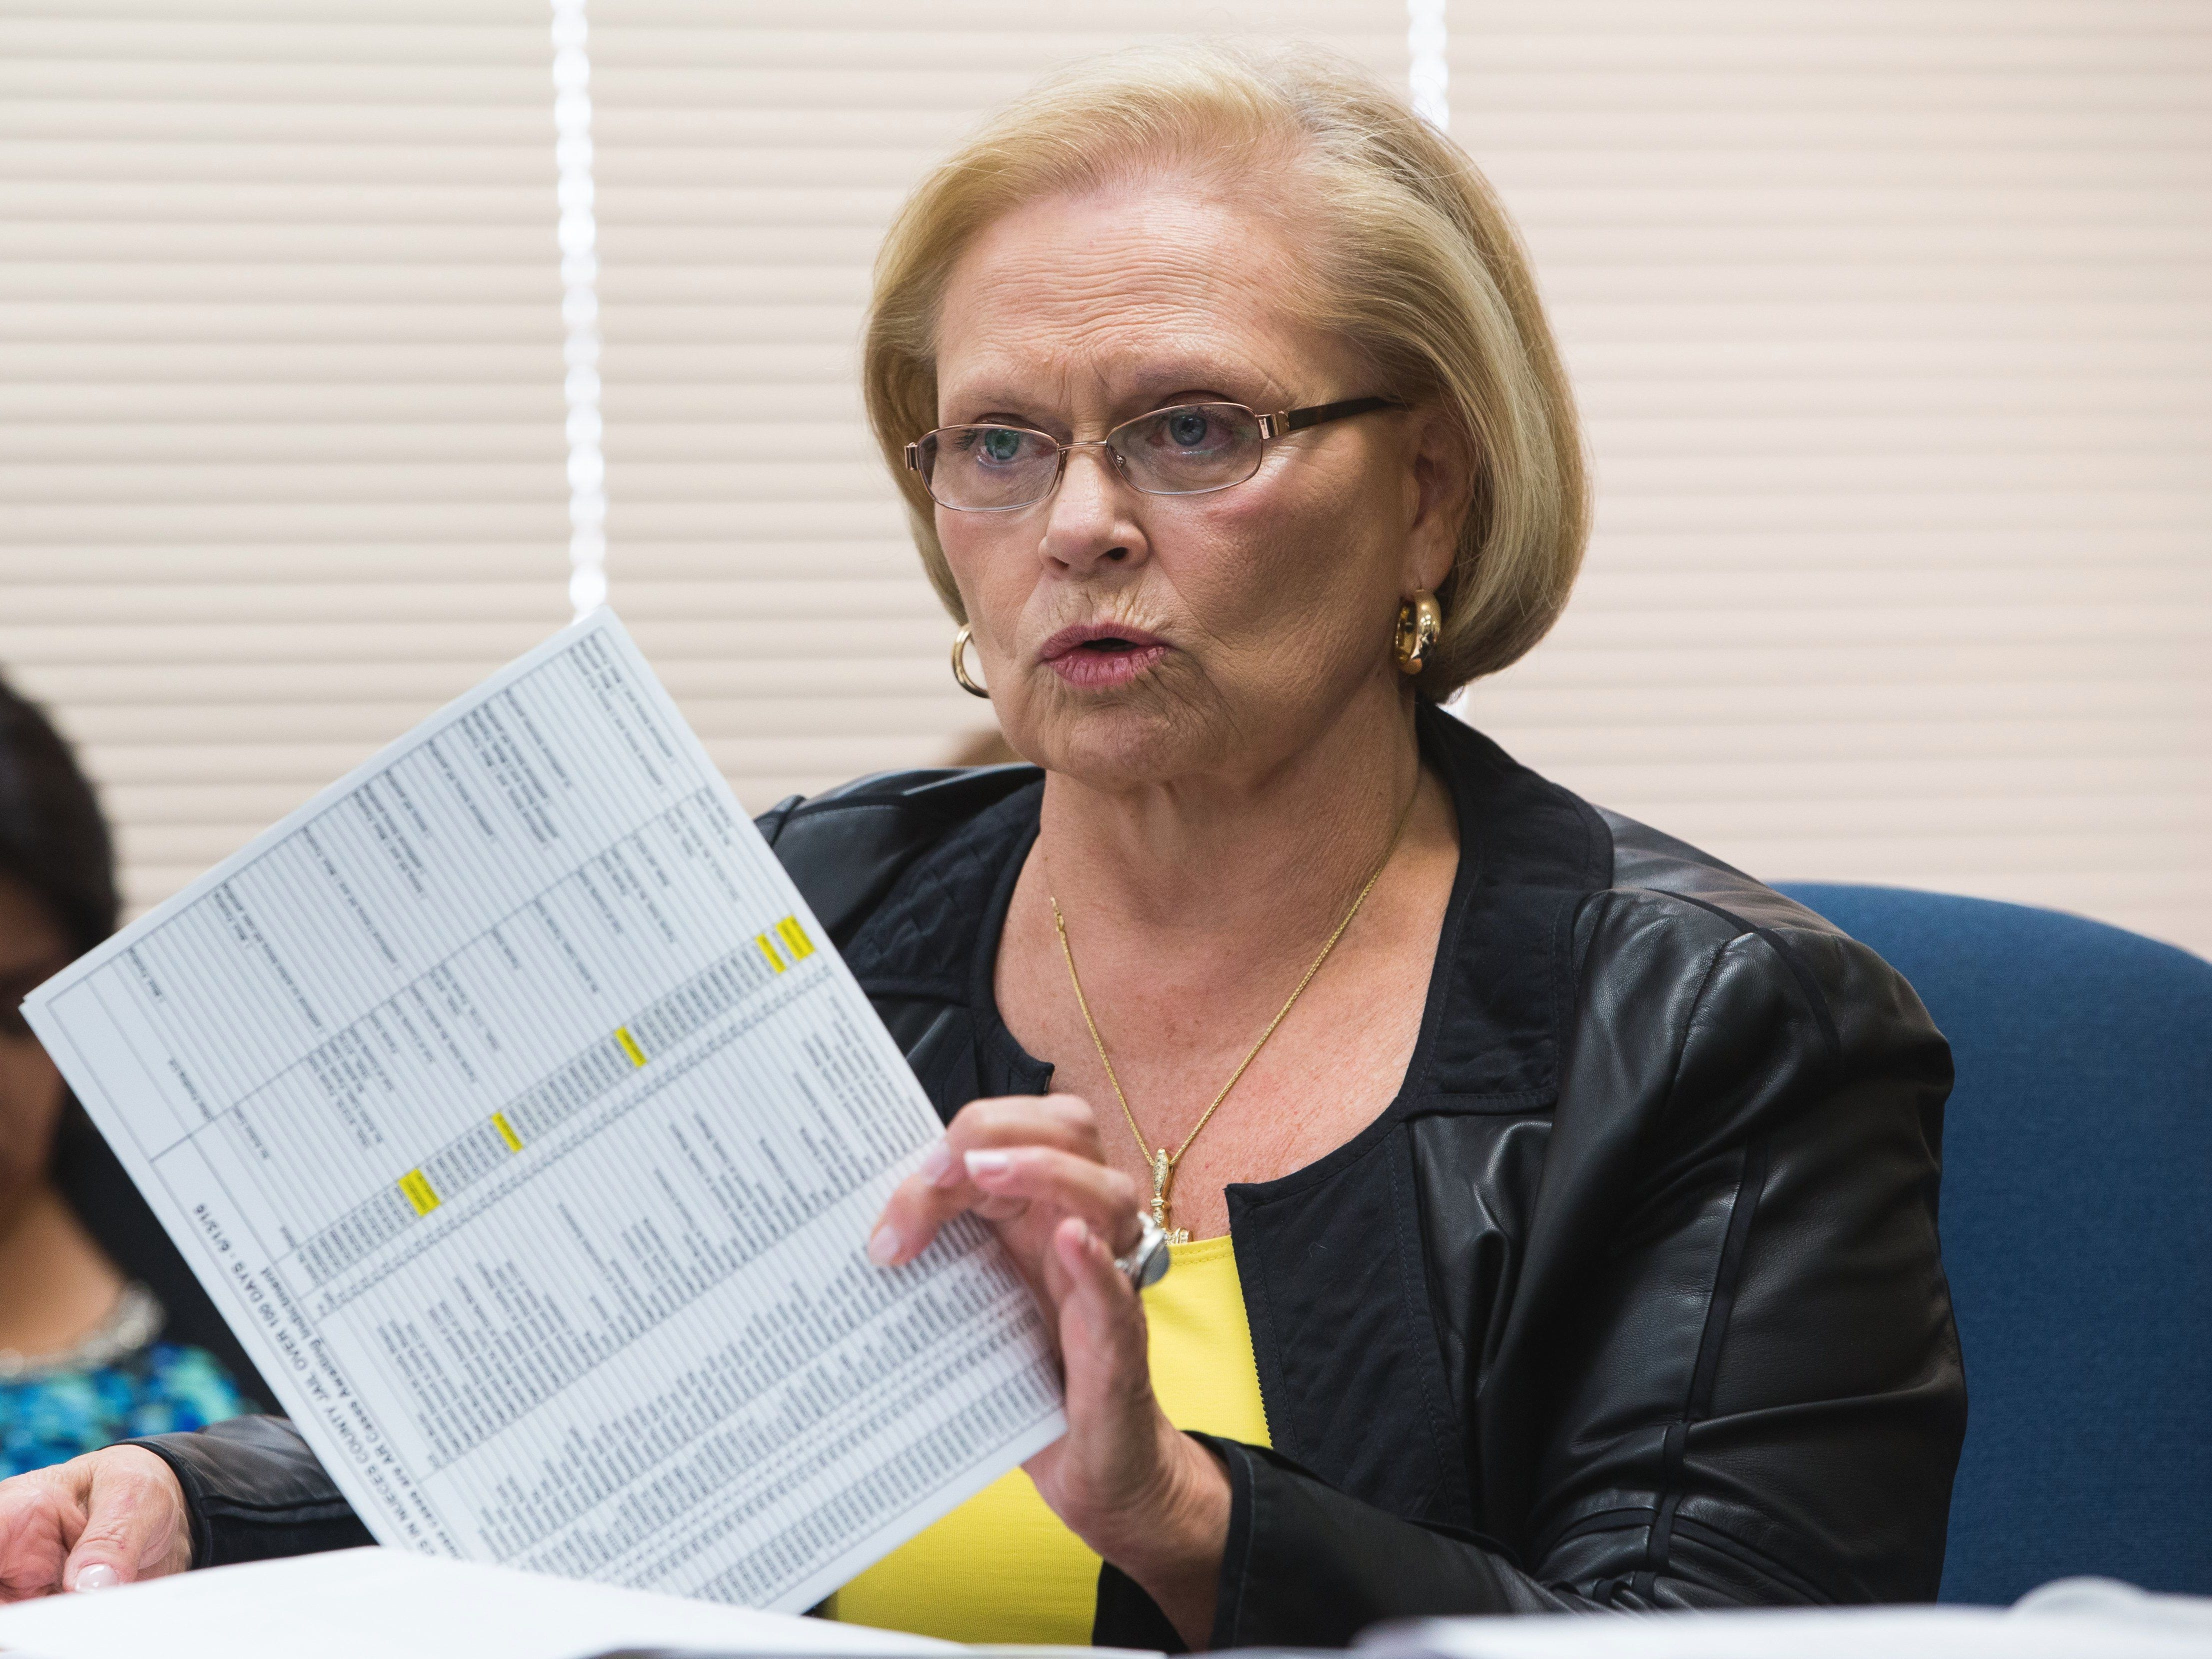 117th District Court Judge Sandra Watts holds up an analysis of cases assigned to her court that hadn't been presented to a grand jury during an emergency judge's meeting in 2016.